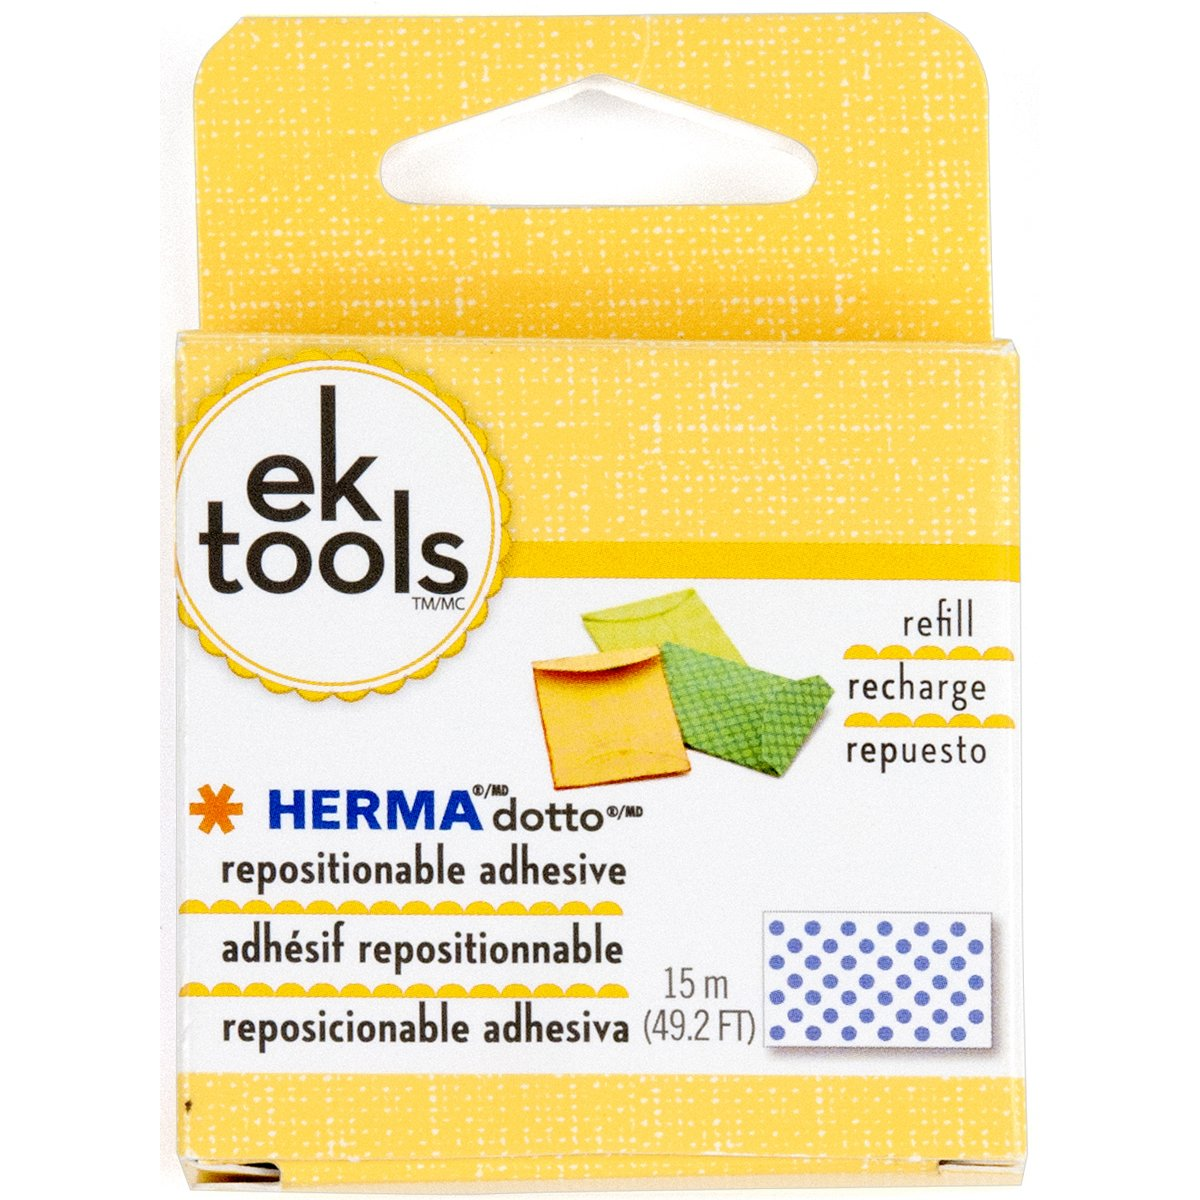 EK Tools Repuesto dispensador reposicionable adhesivo Her...